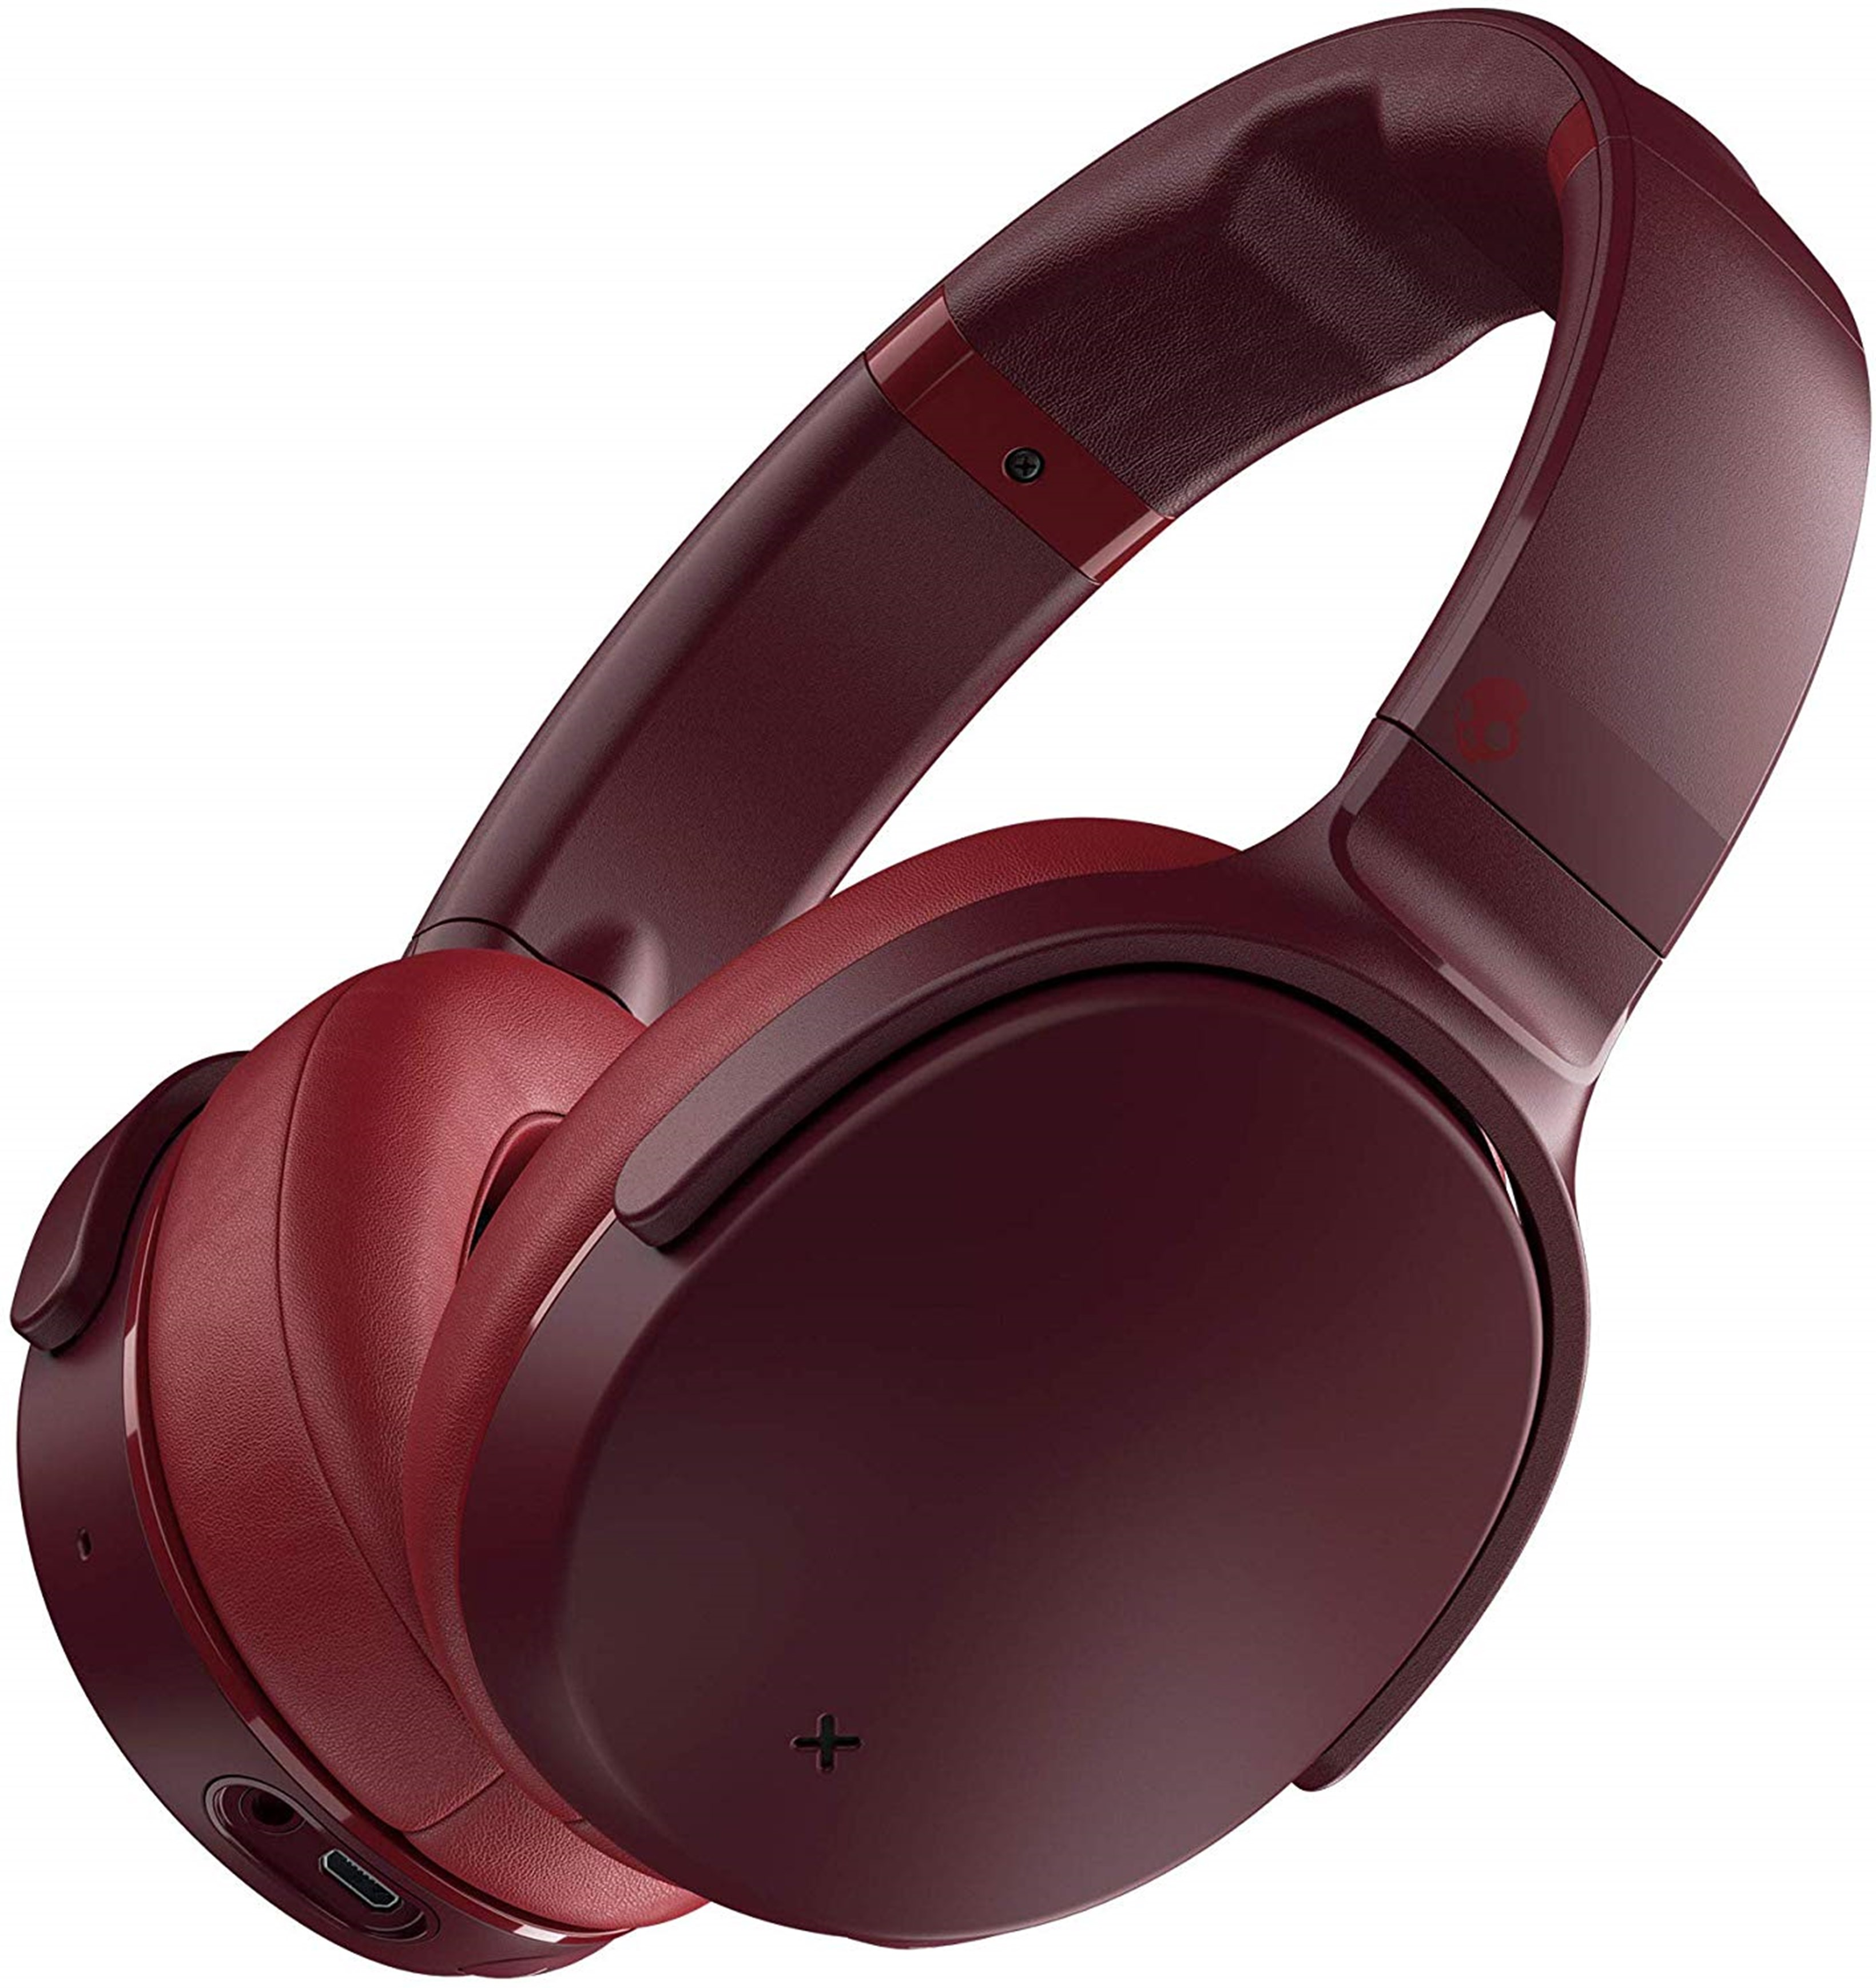 Skullcandy Venue Moab Red Active Noise Cancelling Bluetooth Headphones - 1